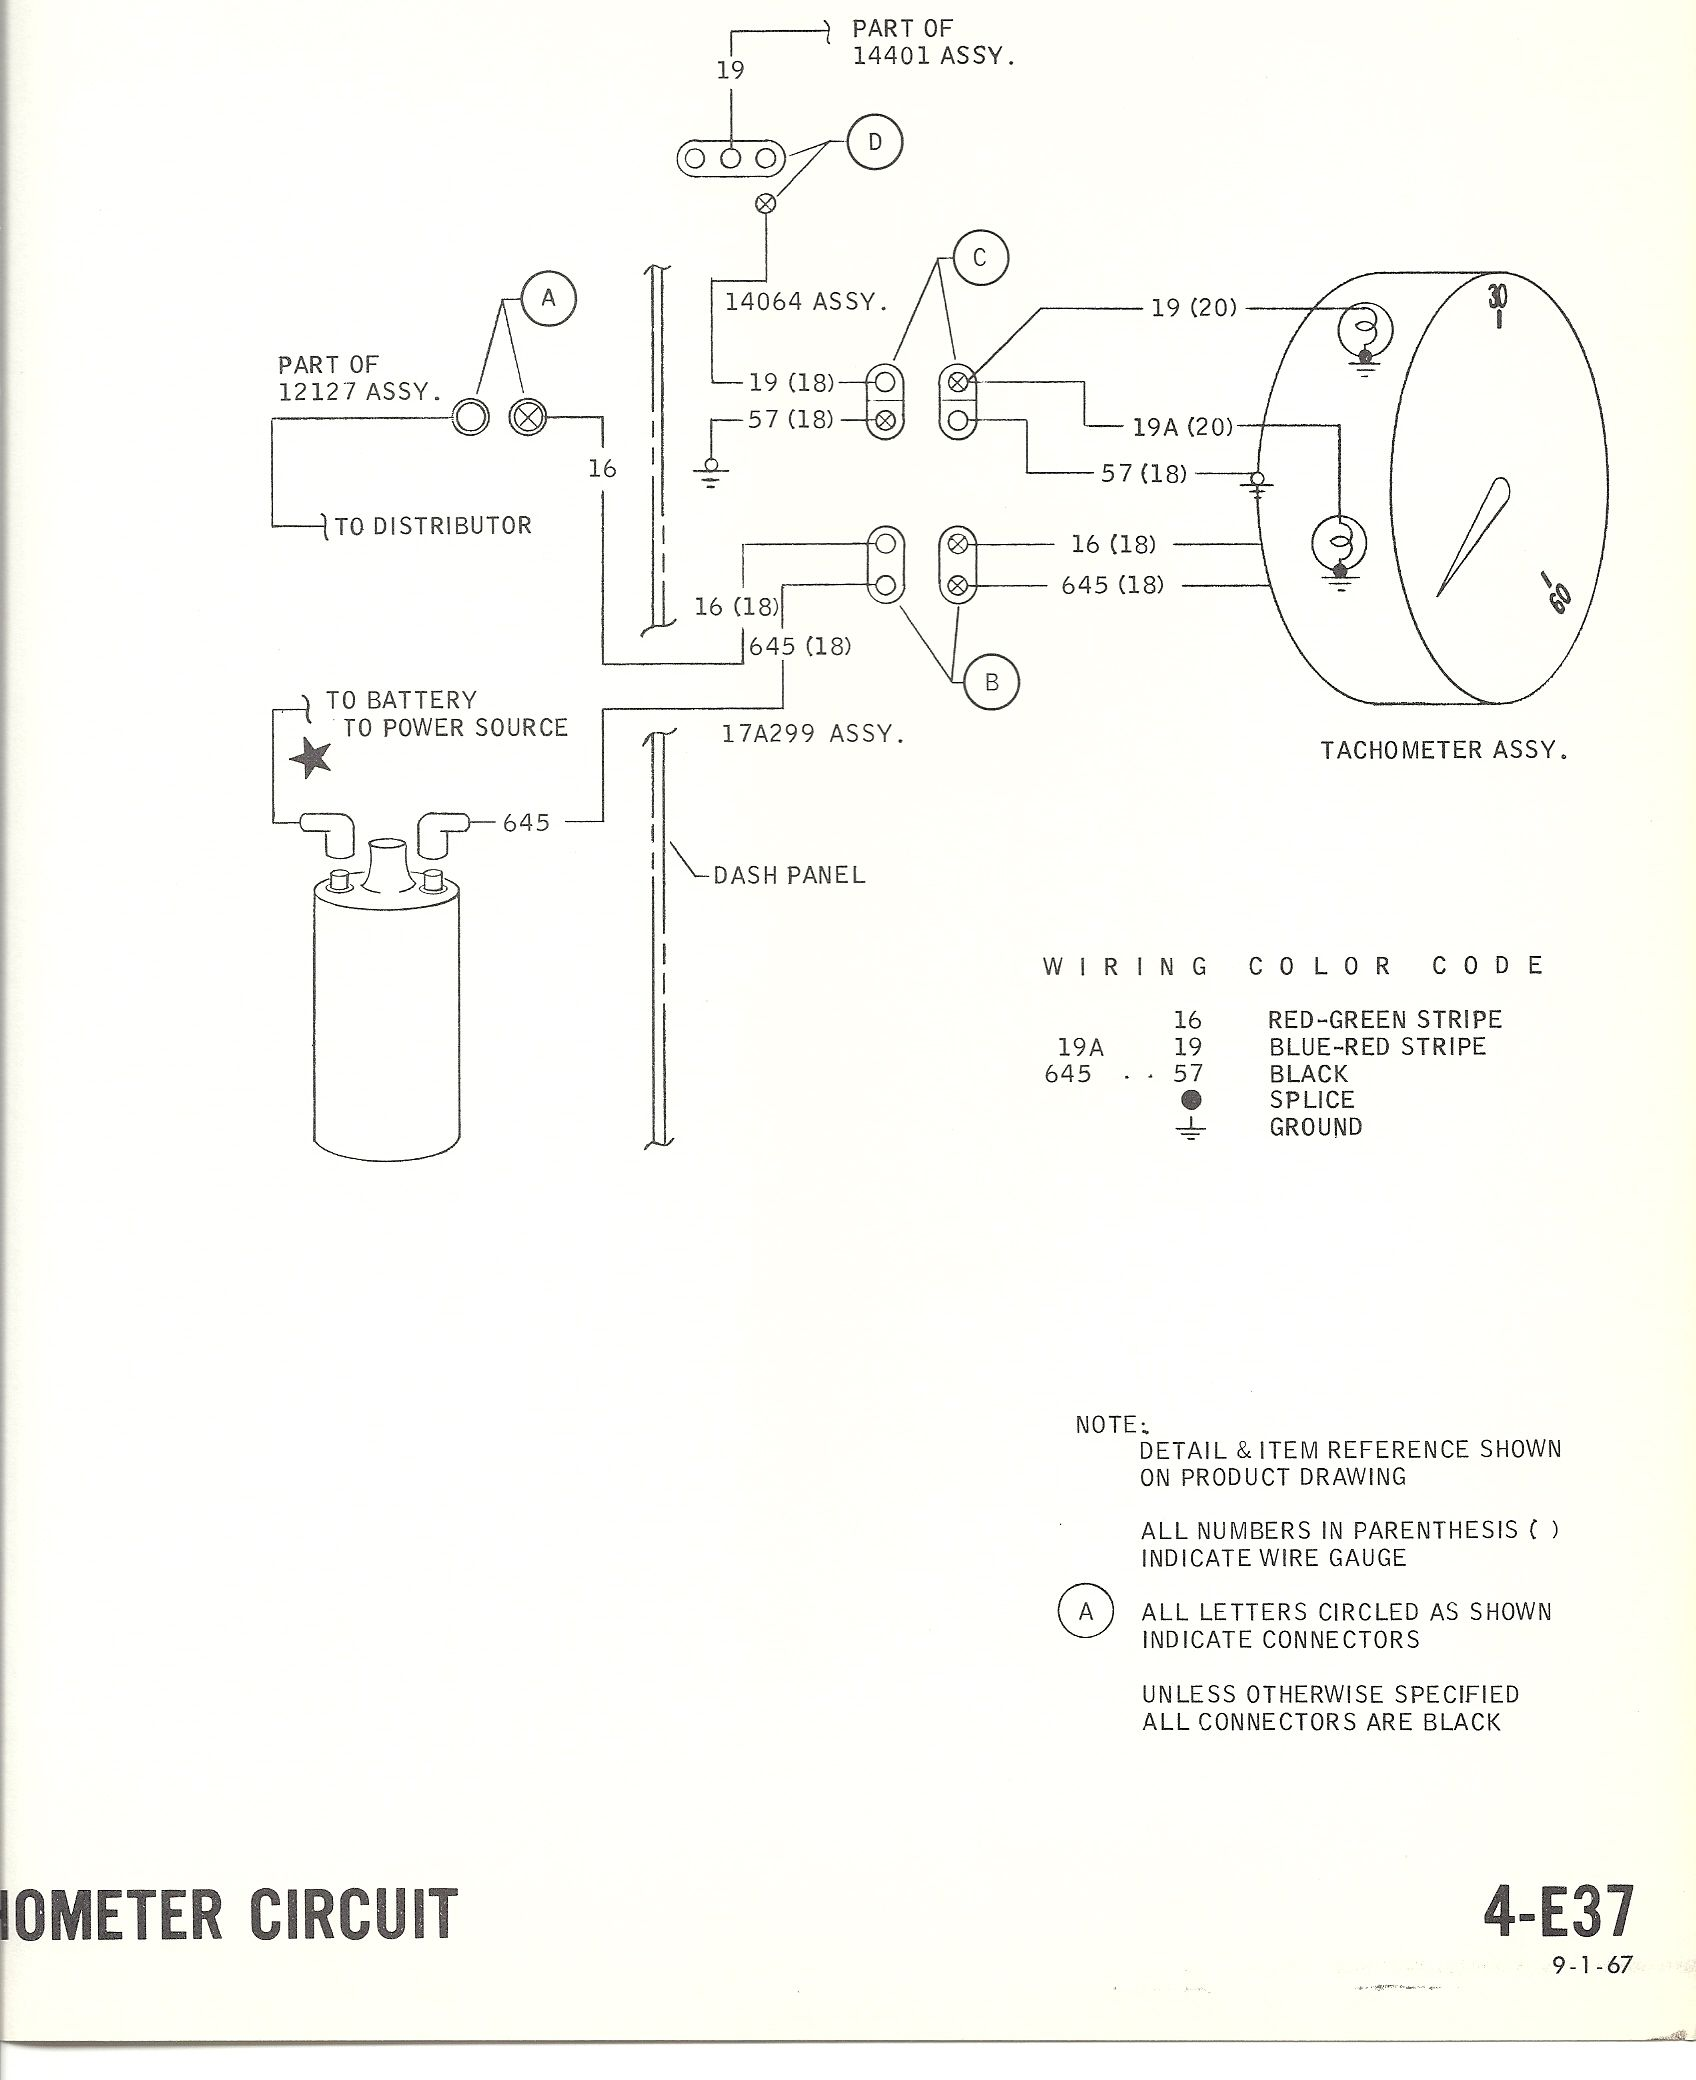 2b2f8e488a4c6a6b870c00f5af30de6c 1967 mustang wiring to tachometer 1968 mustang wiring 1968 mustang ignition wiring diagram at bakdesigns.co